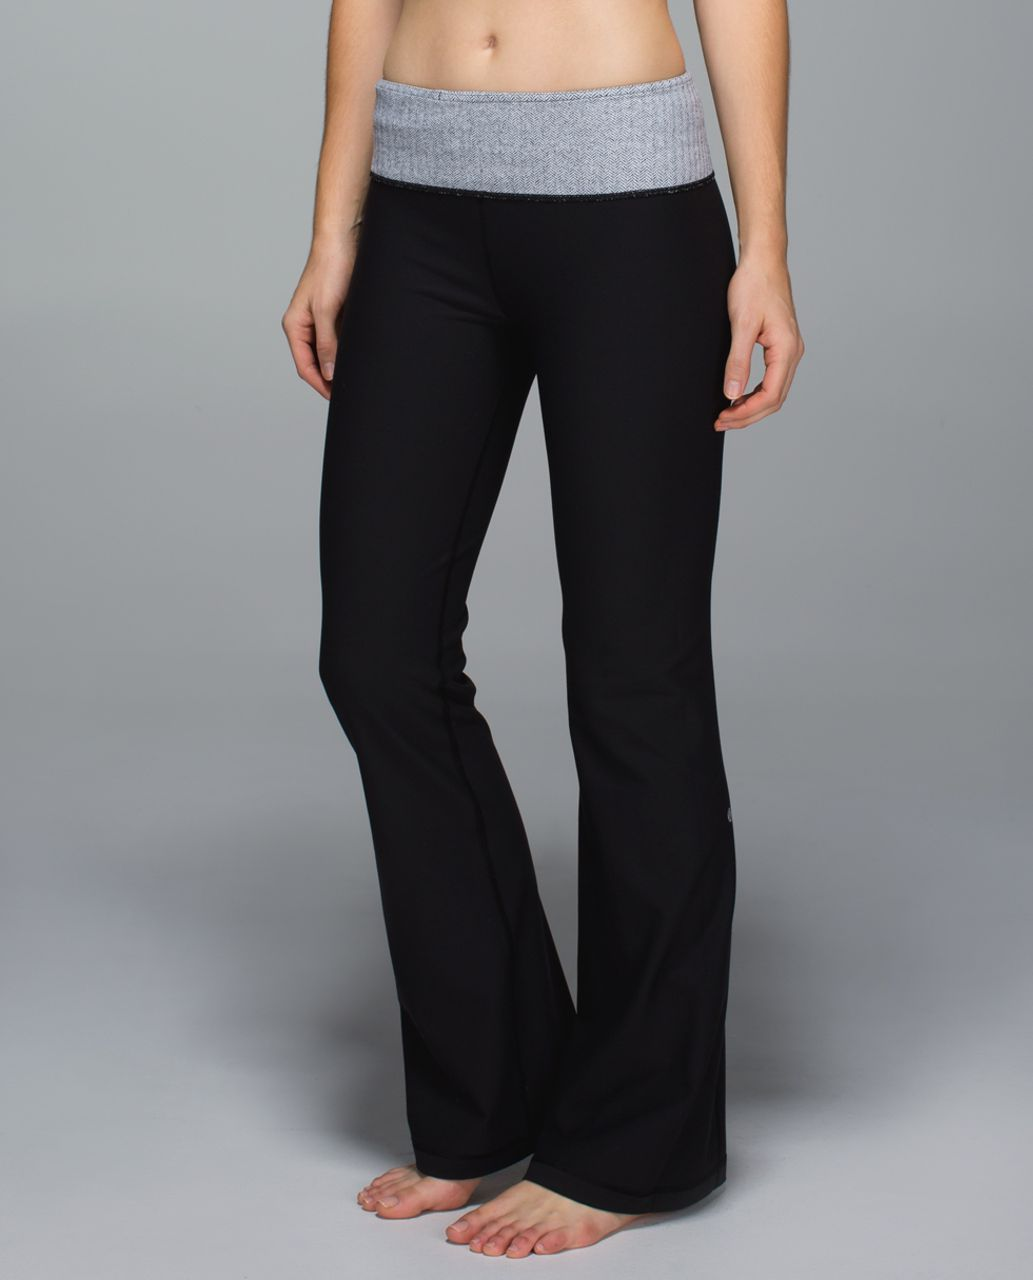 Lululemon Groove Pant *Full-On Luon (Regular) - Black / Heathered Herringbone Black Heathered Black / White